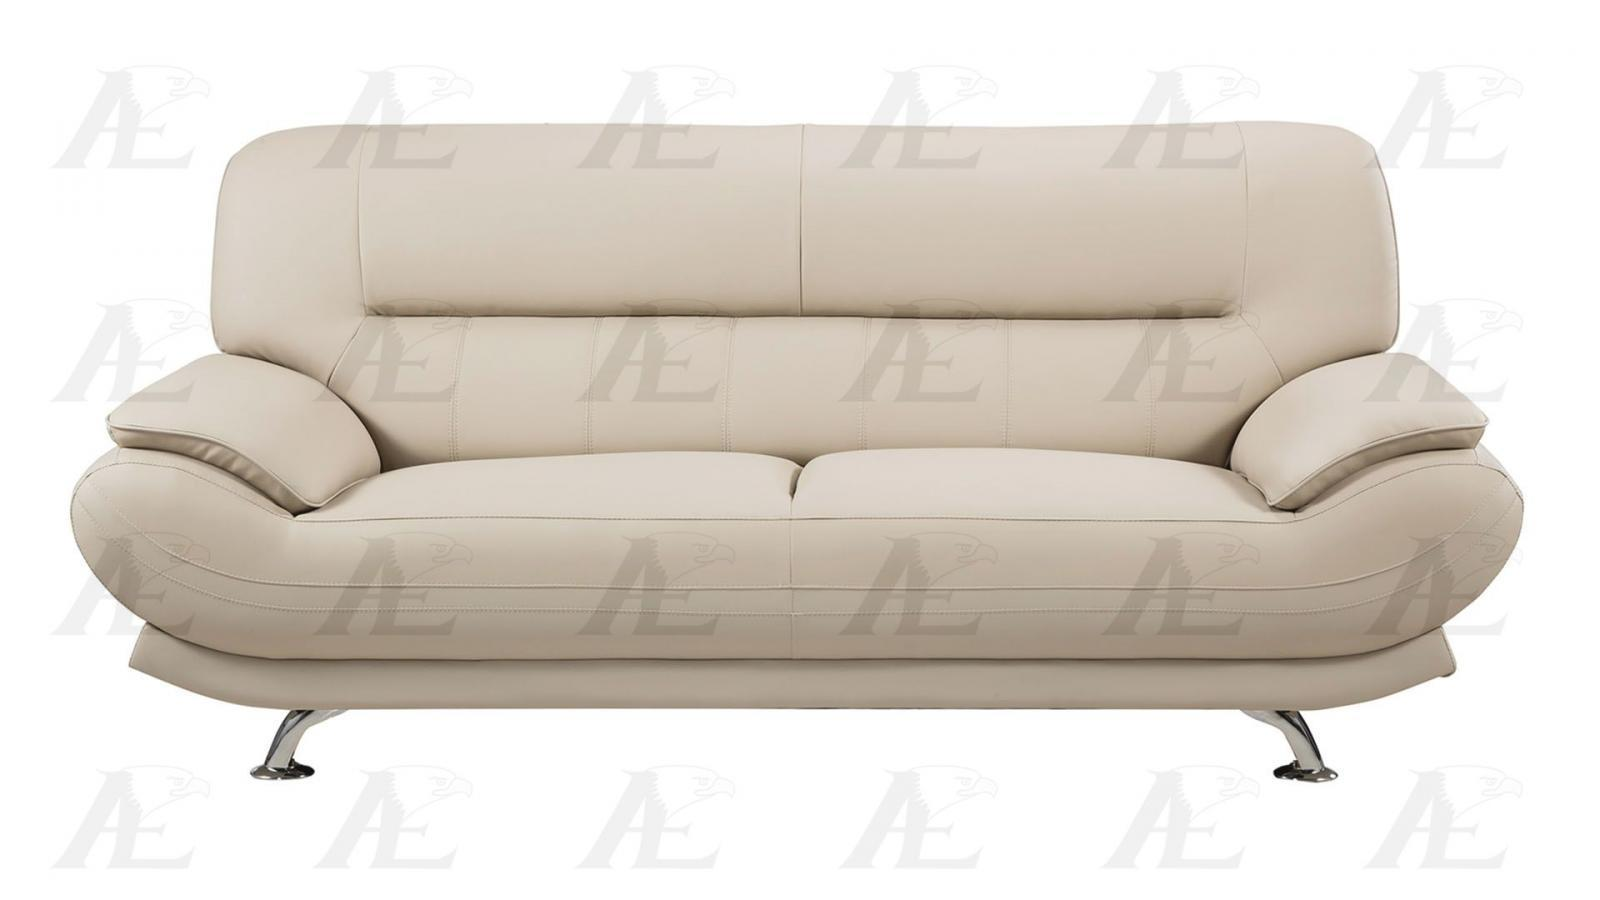 American Eagle Ae709 Cr Cream Sofa Loveseat And Chair Faux Leather Set 3pcs Sofas Loveseats